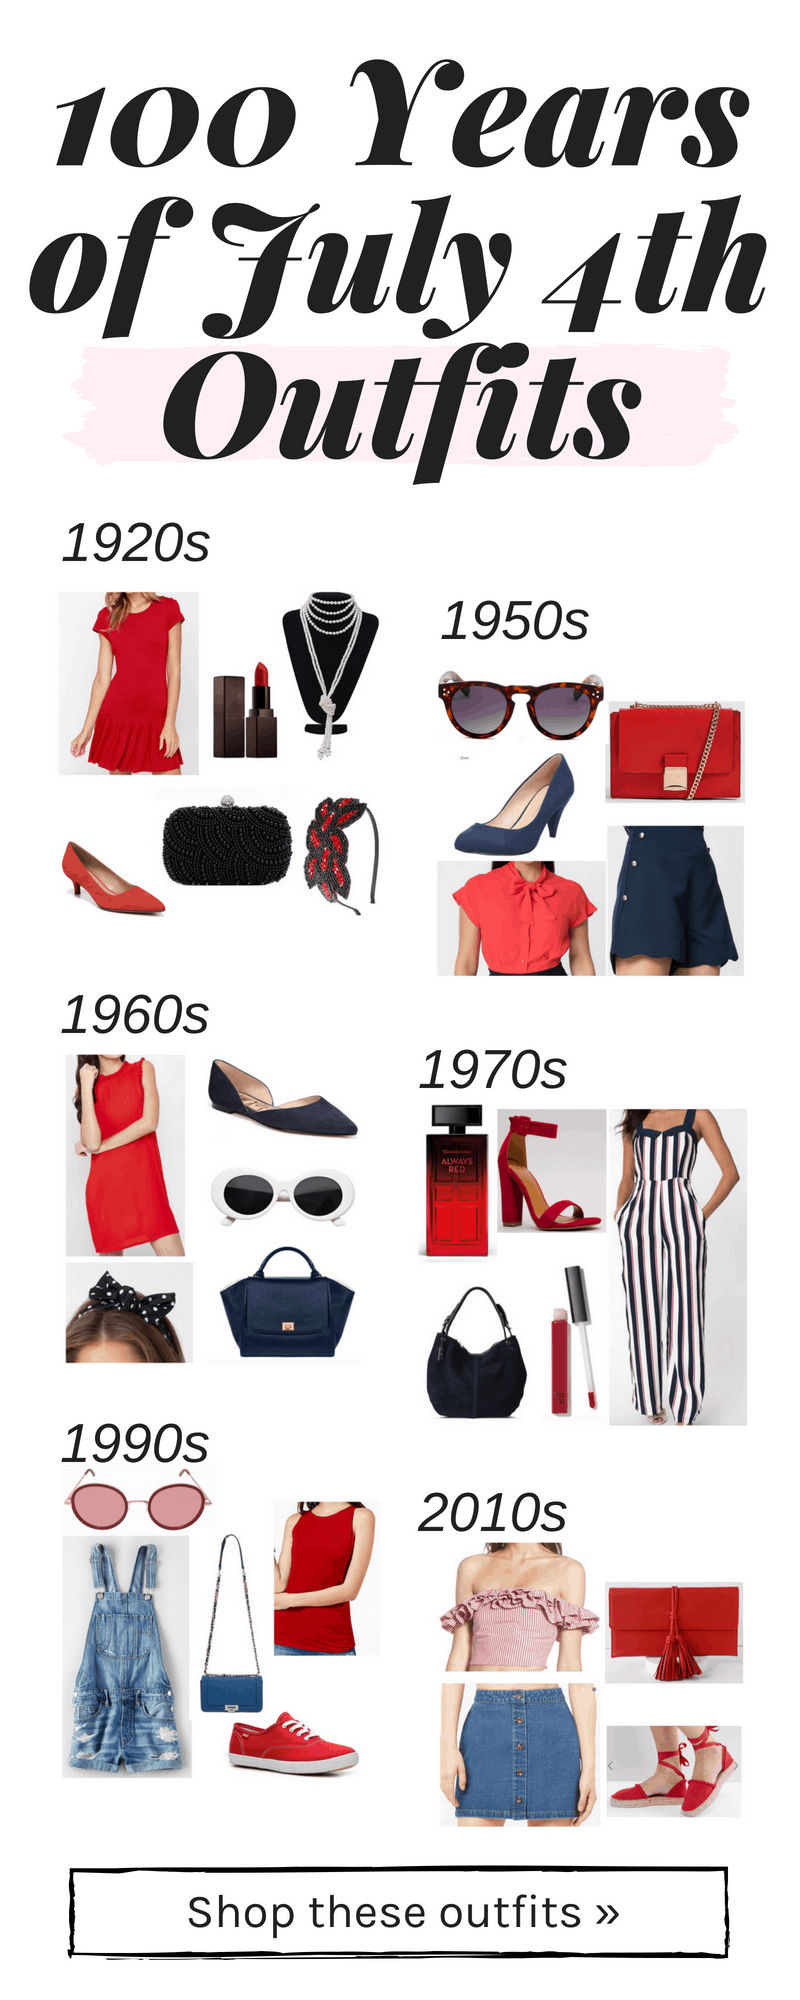 100 years of 4th of july outfits: Cute Independence Day outfits from the 1950s, 1920s, 1970s, 1990s, 2010s